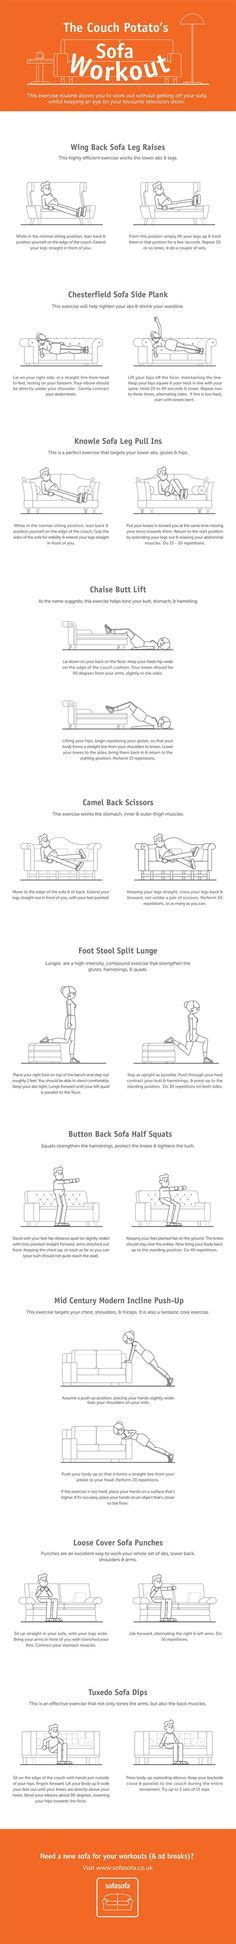 couch potato exercises 1000 images about workout on pinterest abs work outs